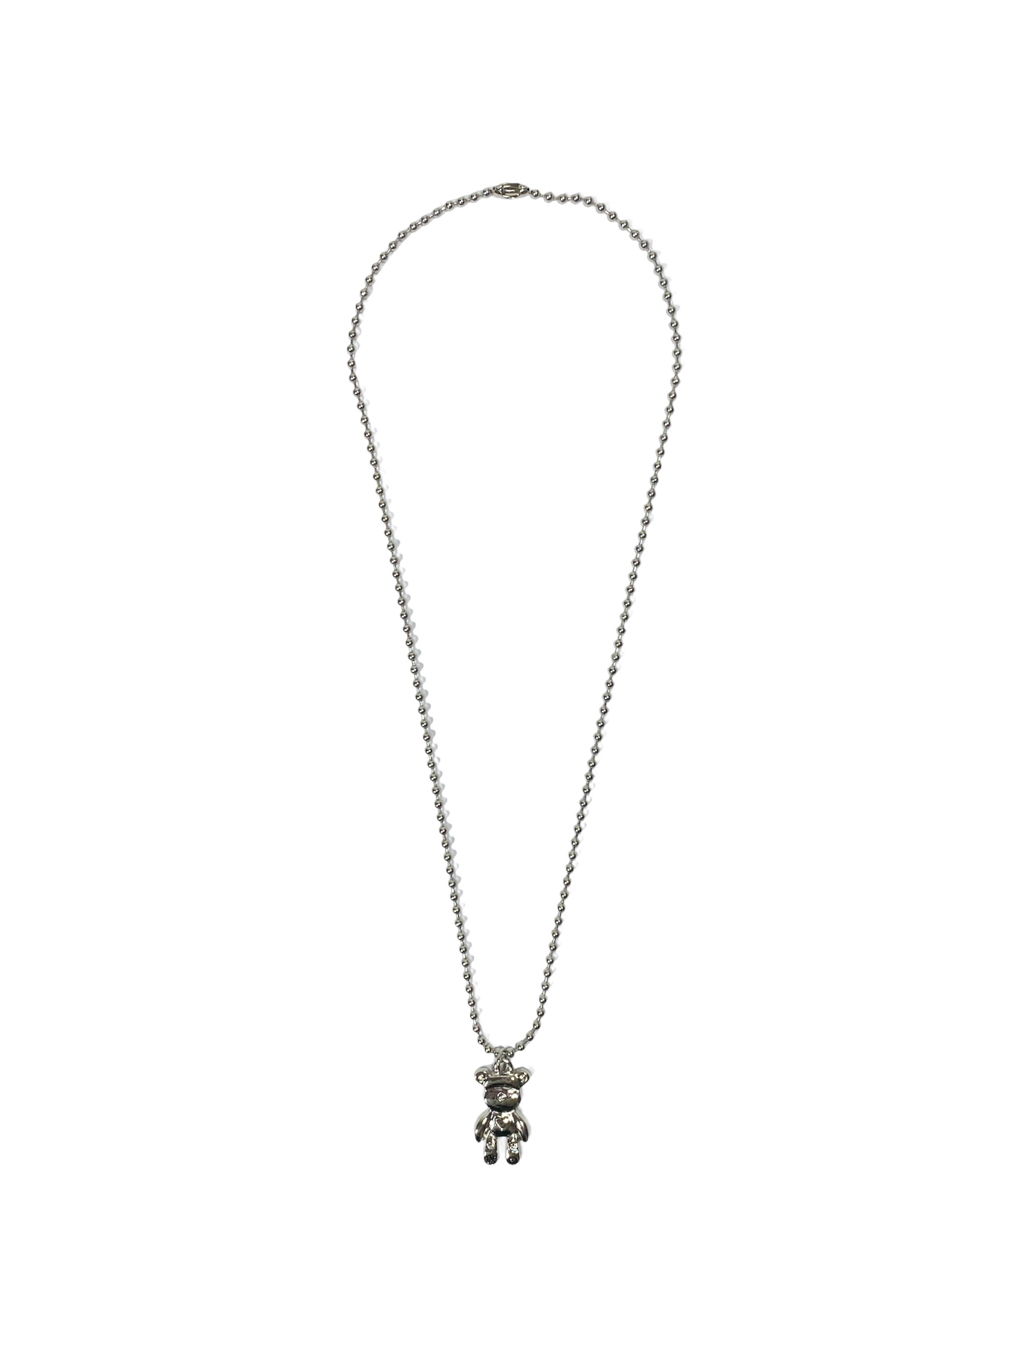 Necklace (New Teddy)